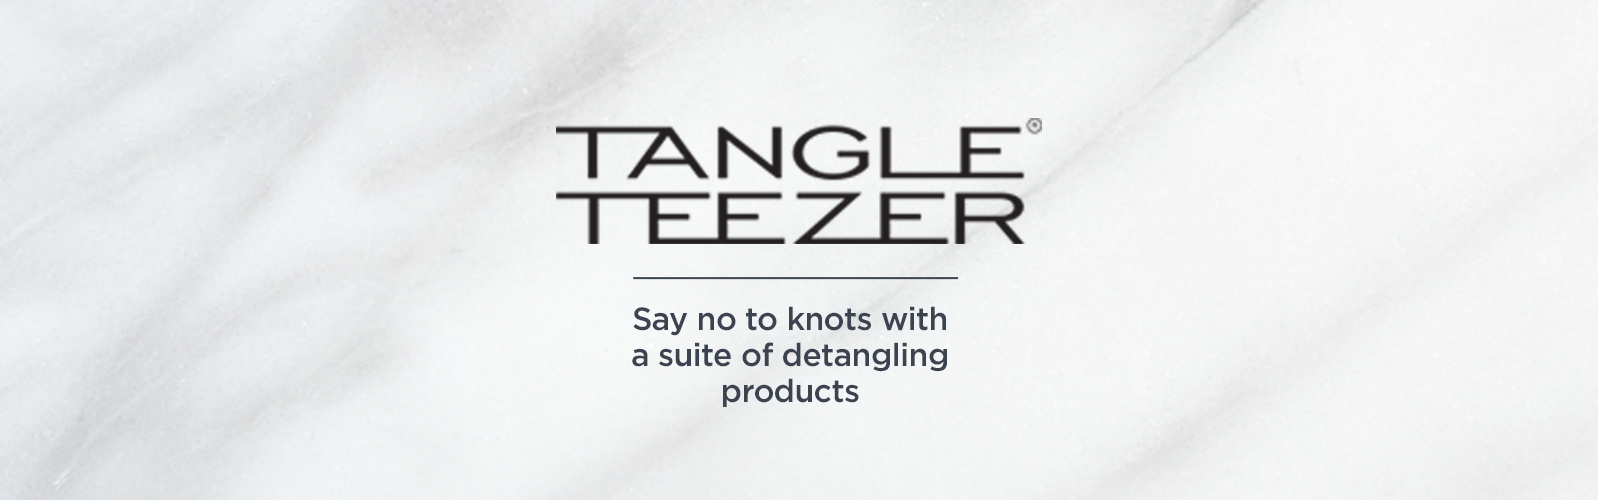 Tangle Teezer. Say no to knots with a suite of detangling products.